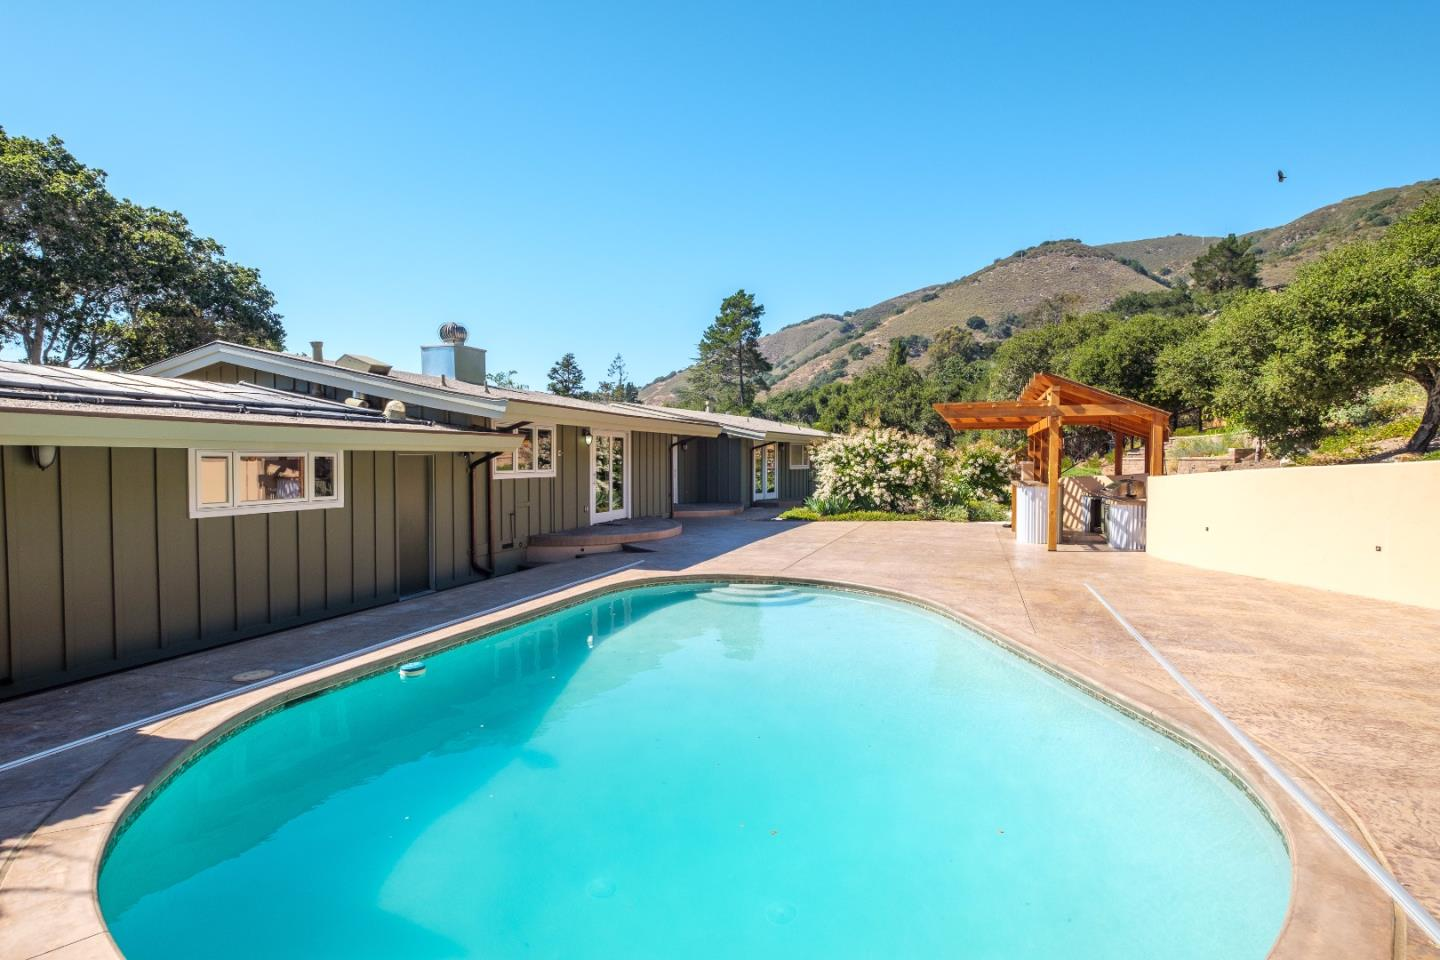 Additional photo for property listing at 102 Rancho Road  Carmel Valley, カリフォルニア 93924 アメリカ合衆国